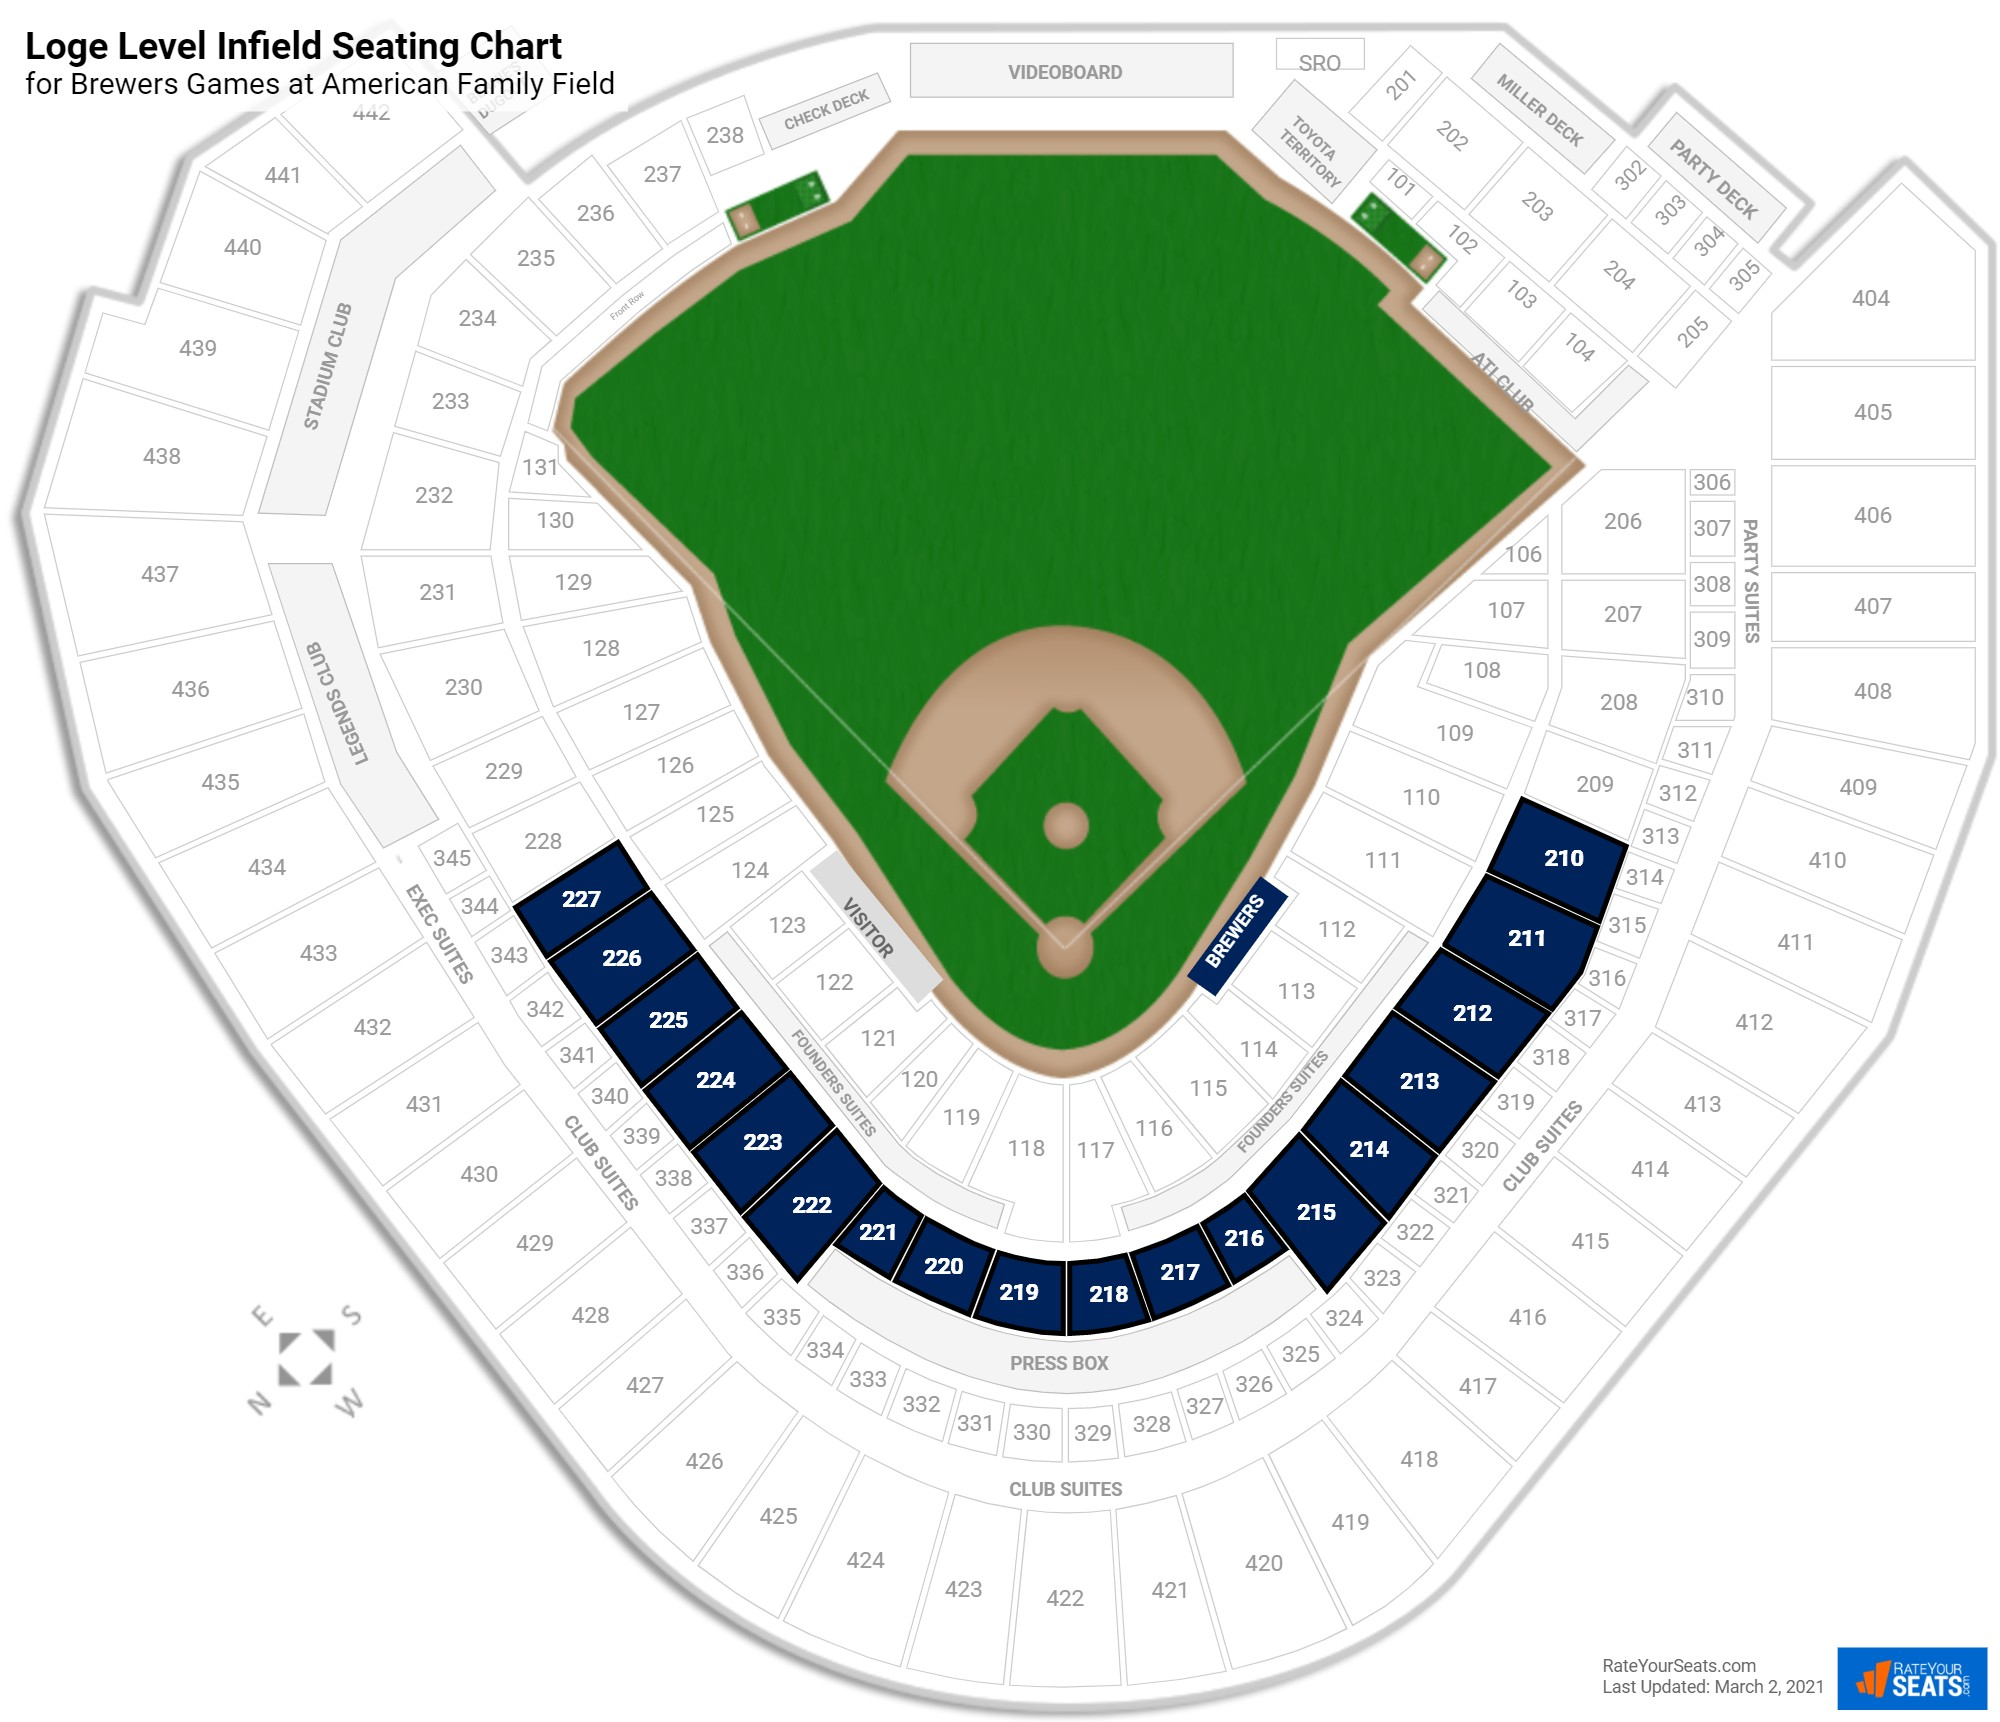 Miller Park Loge Level Infield seating chart